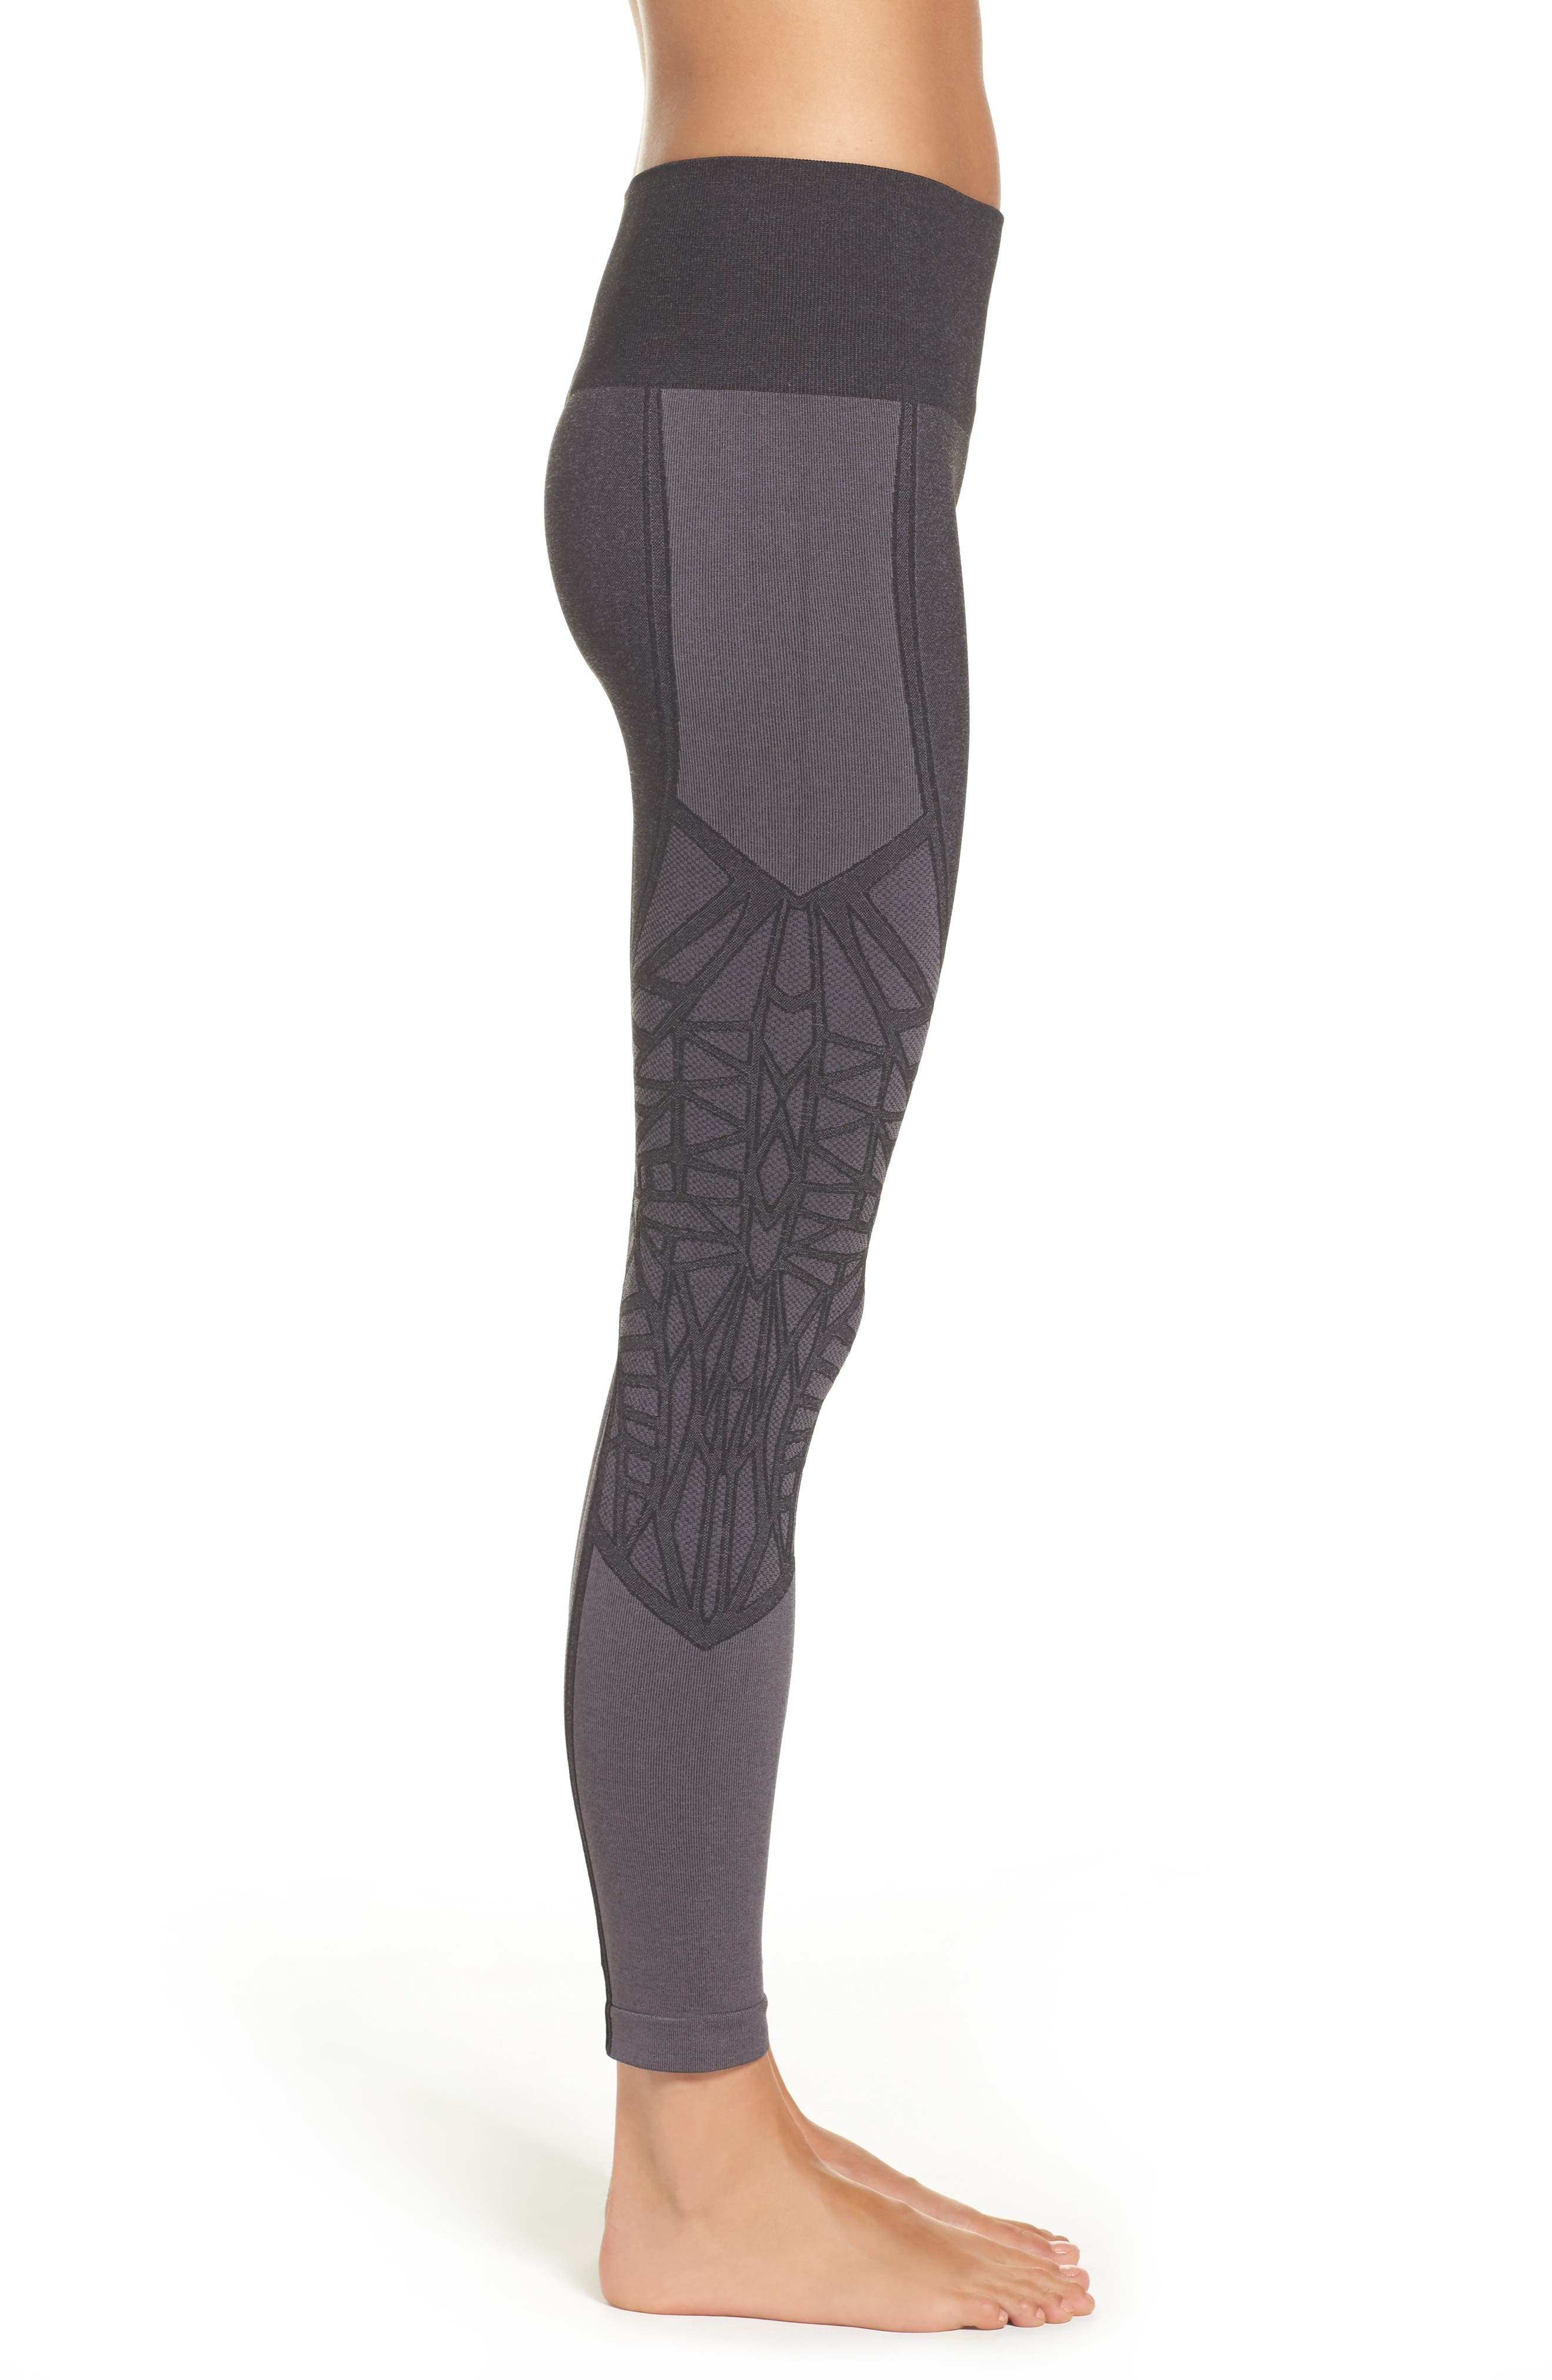 Revolution Leggings,                             Alternate thumbnail 3, color,                             Excalibur And Black